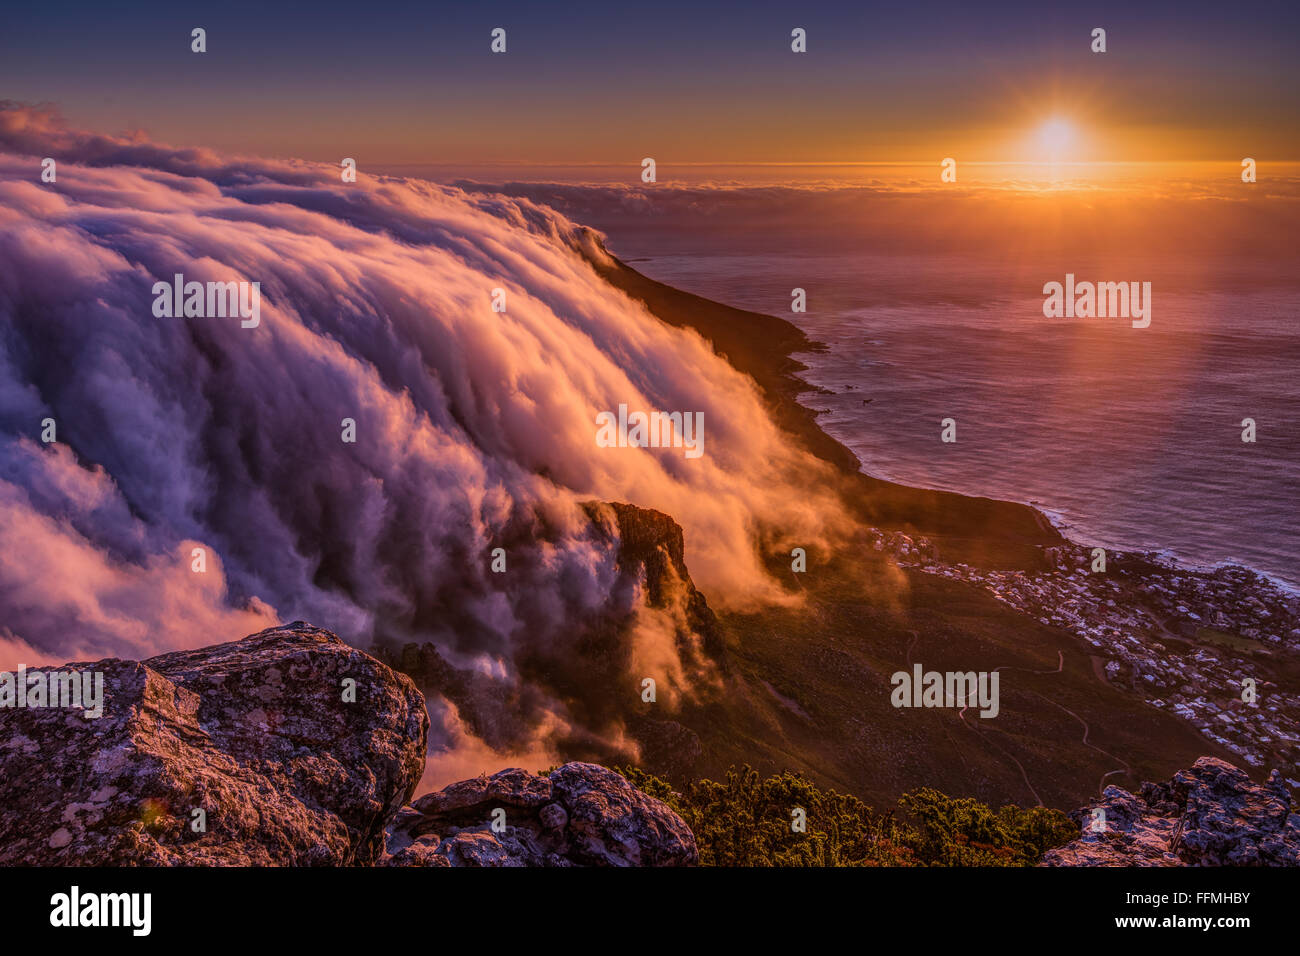 Sunset from Table Mountain, South Africa - Stock Image